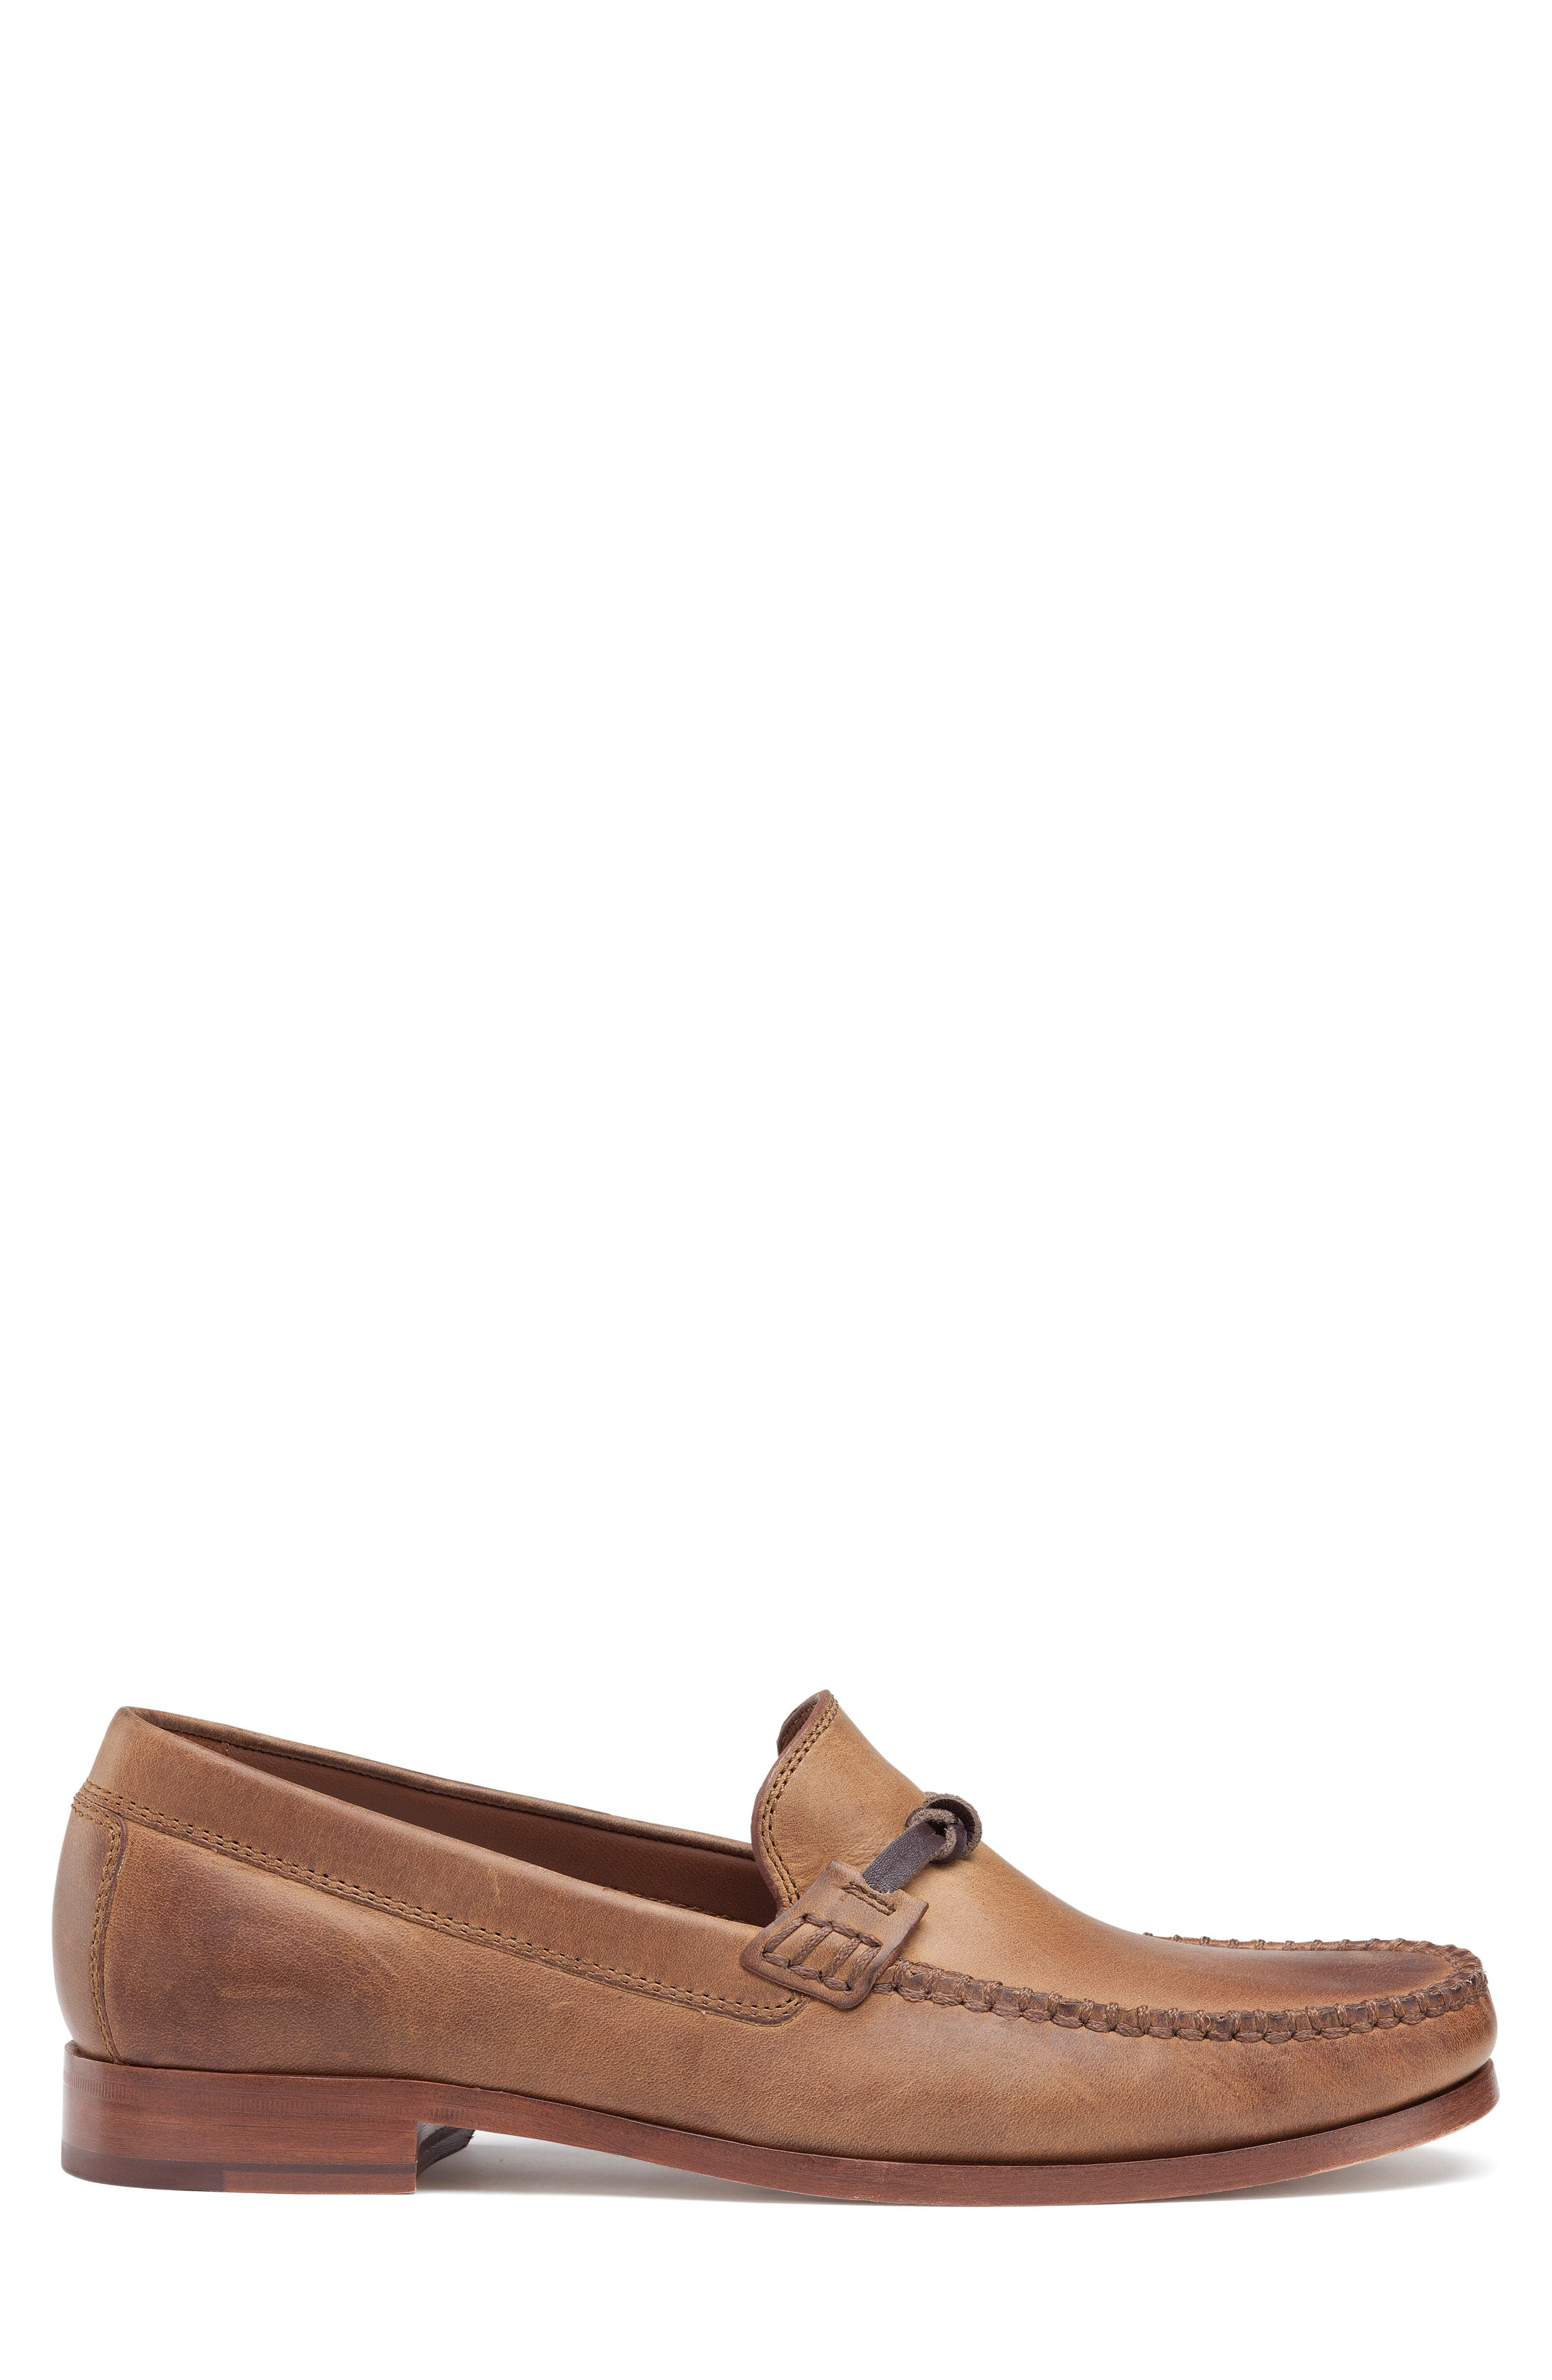 'Sawyer' Loafer,                             Alternate thumbnail 3, color,                             TAN LEATHER